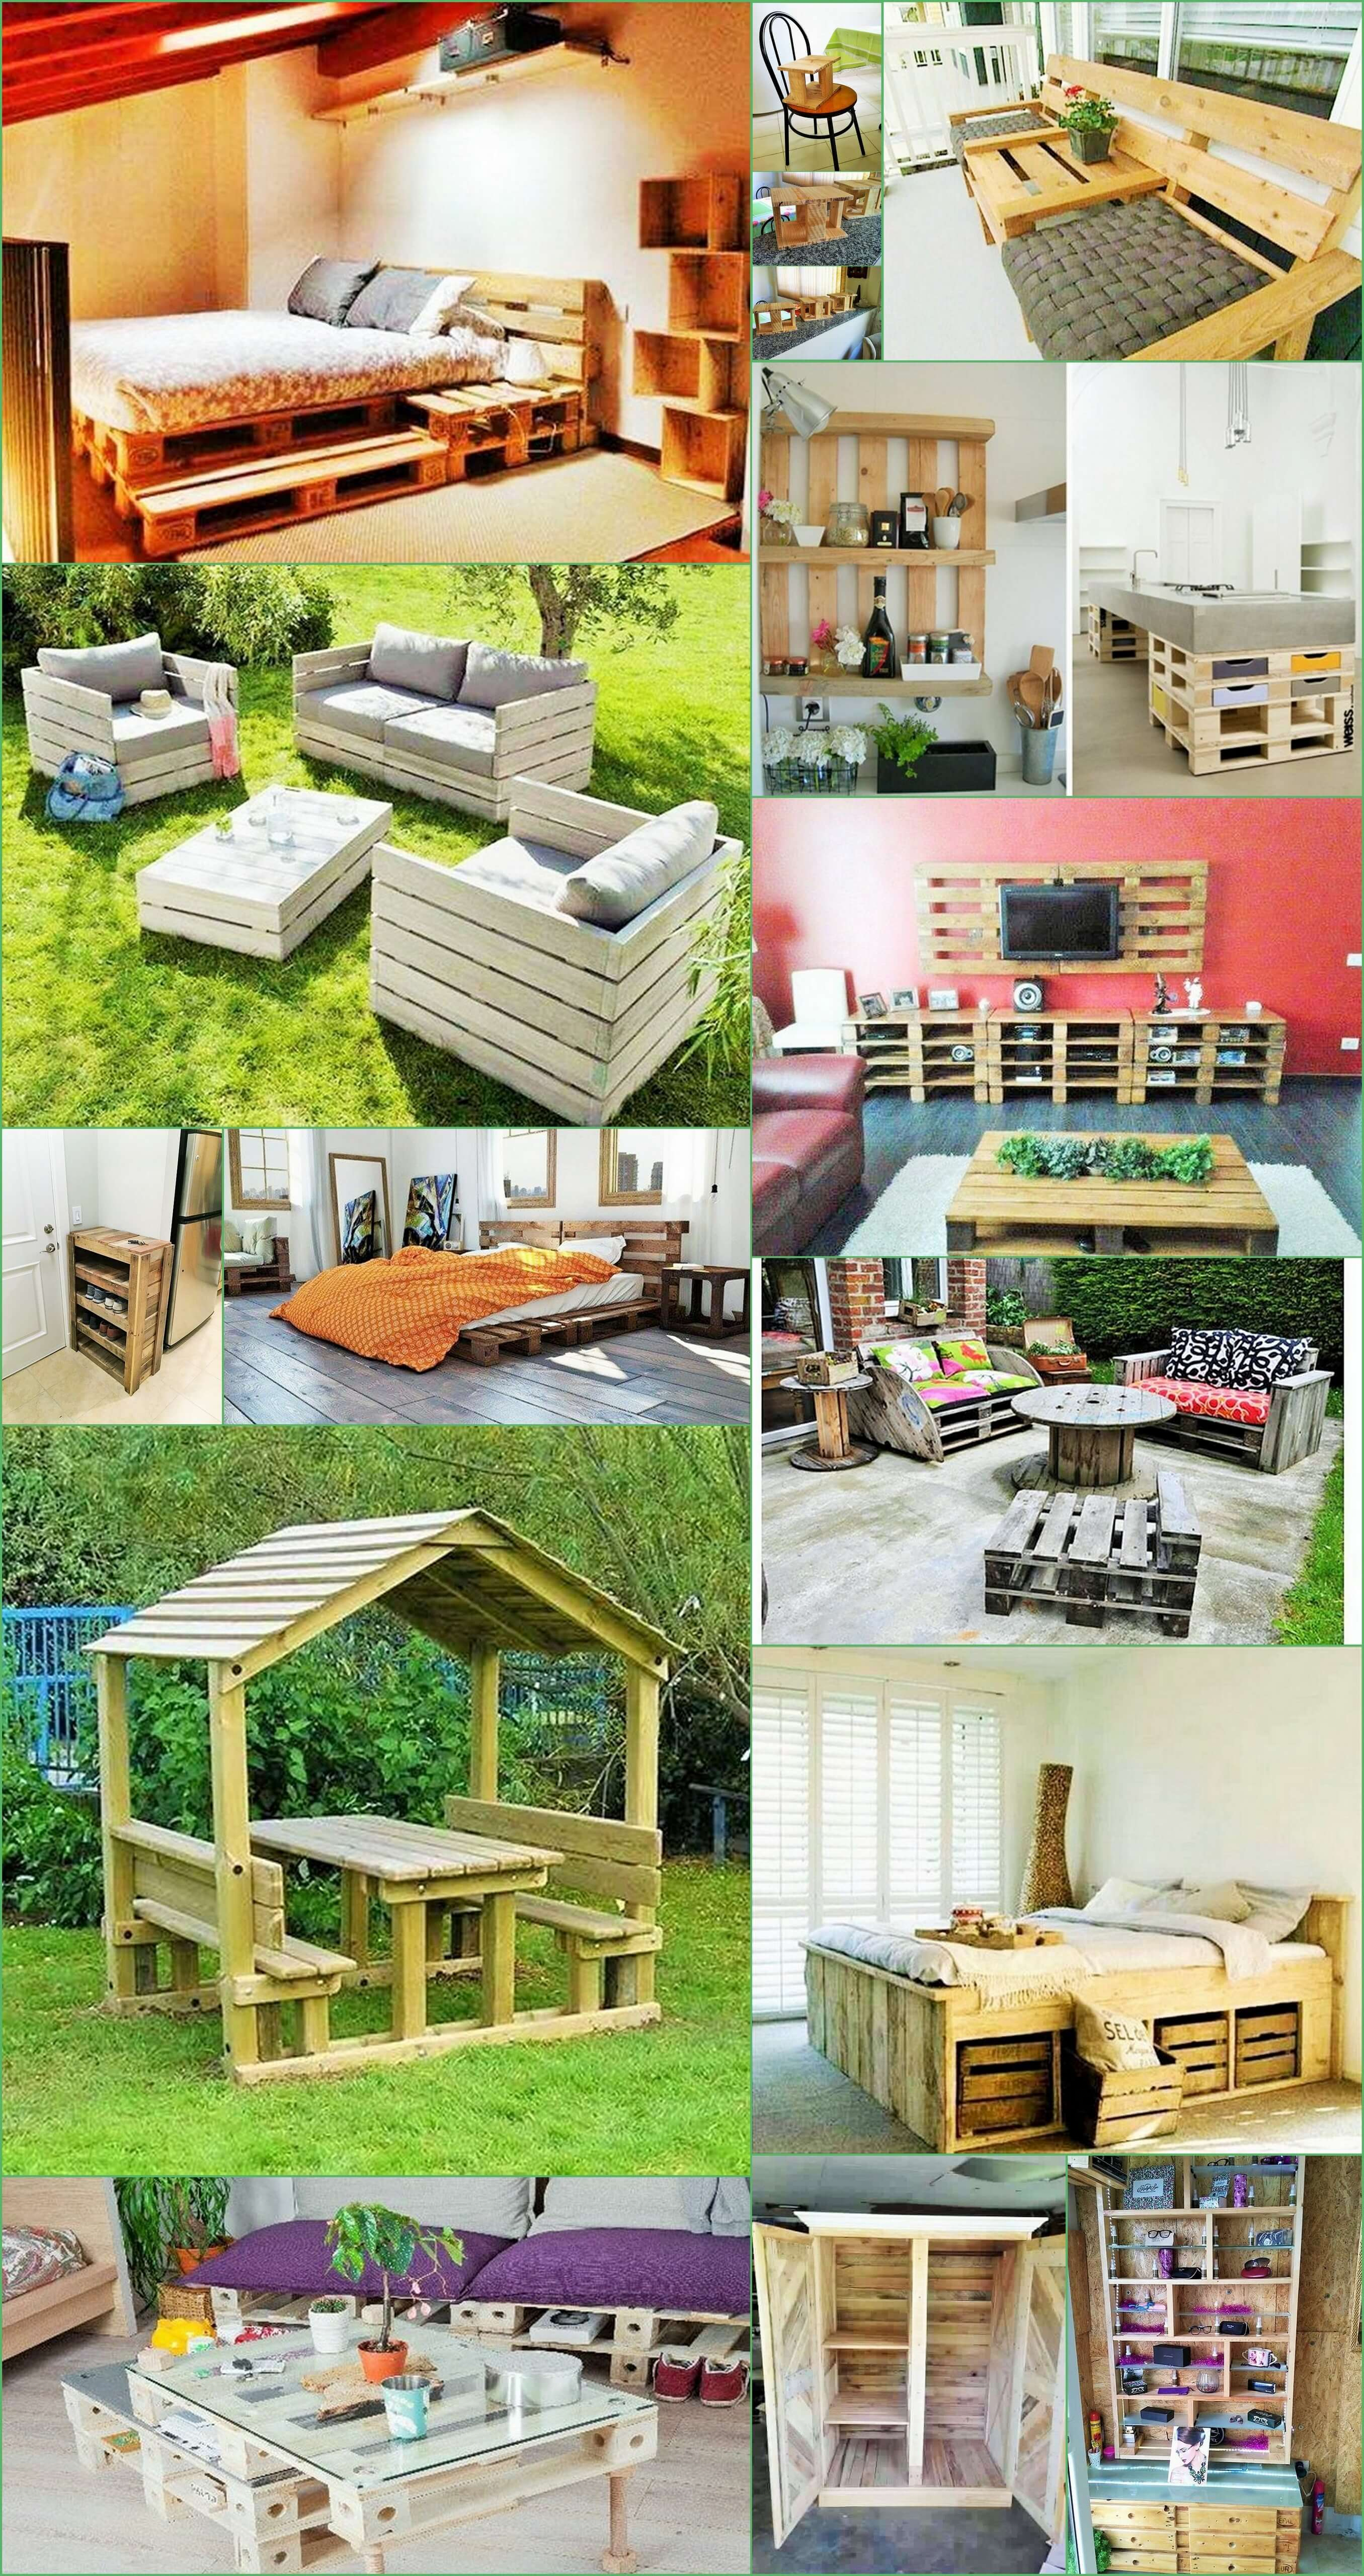 Home Decor with Wooden Pallets Furniture